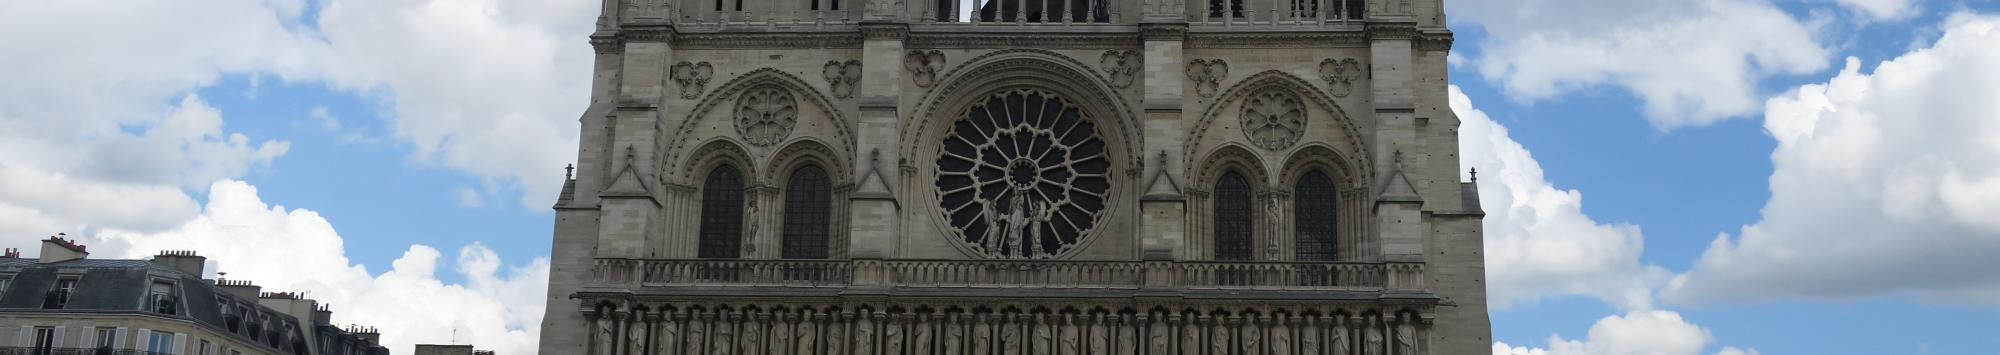 banner image of cathedral in Paris, France